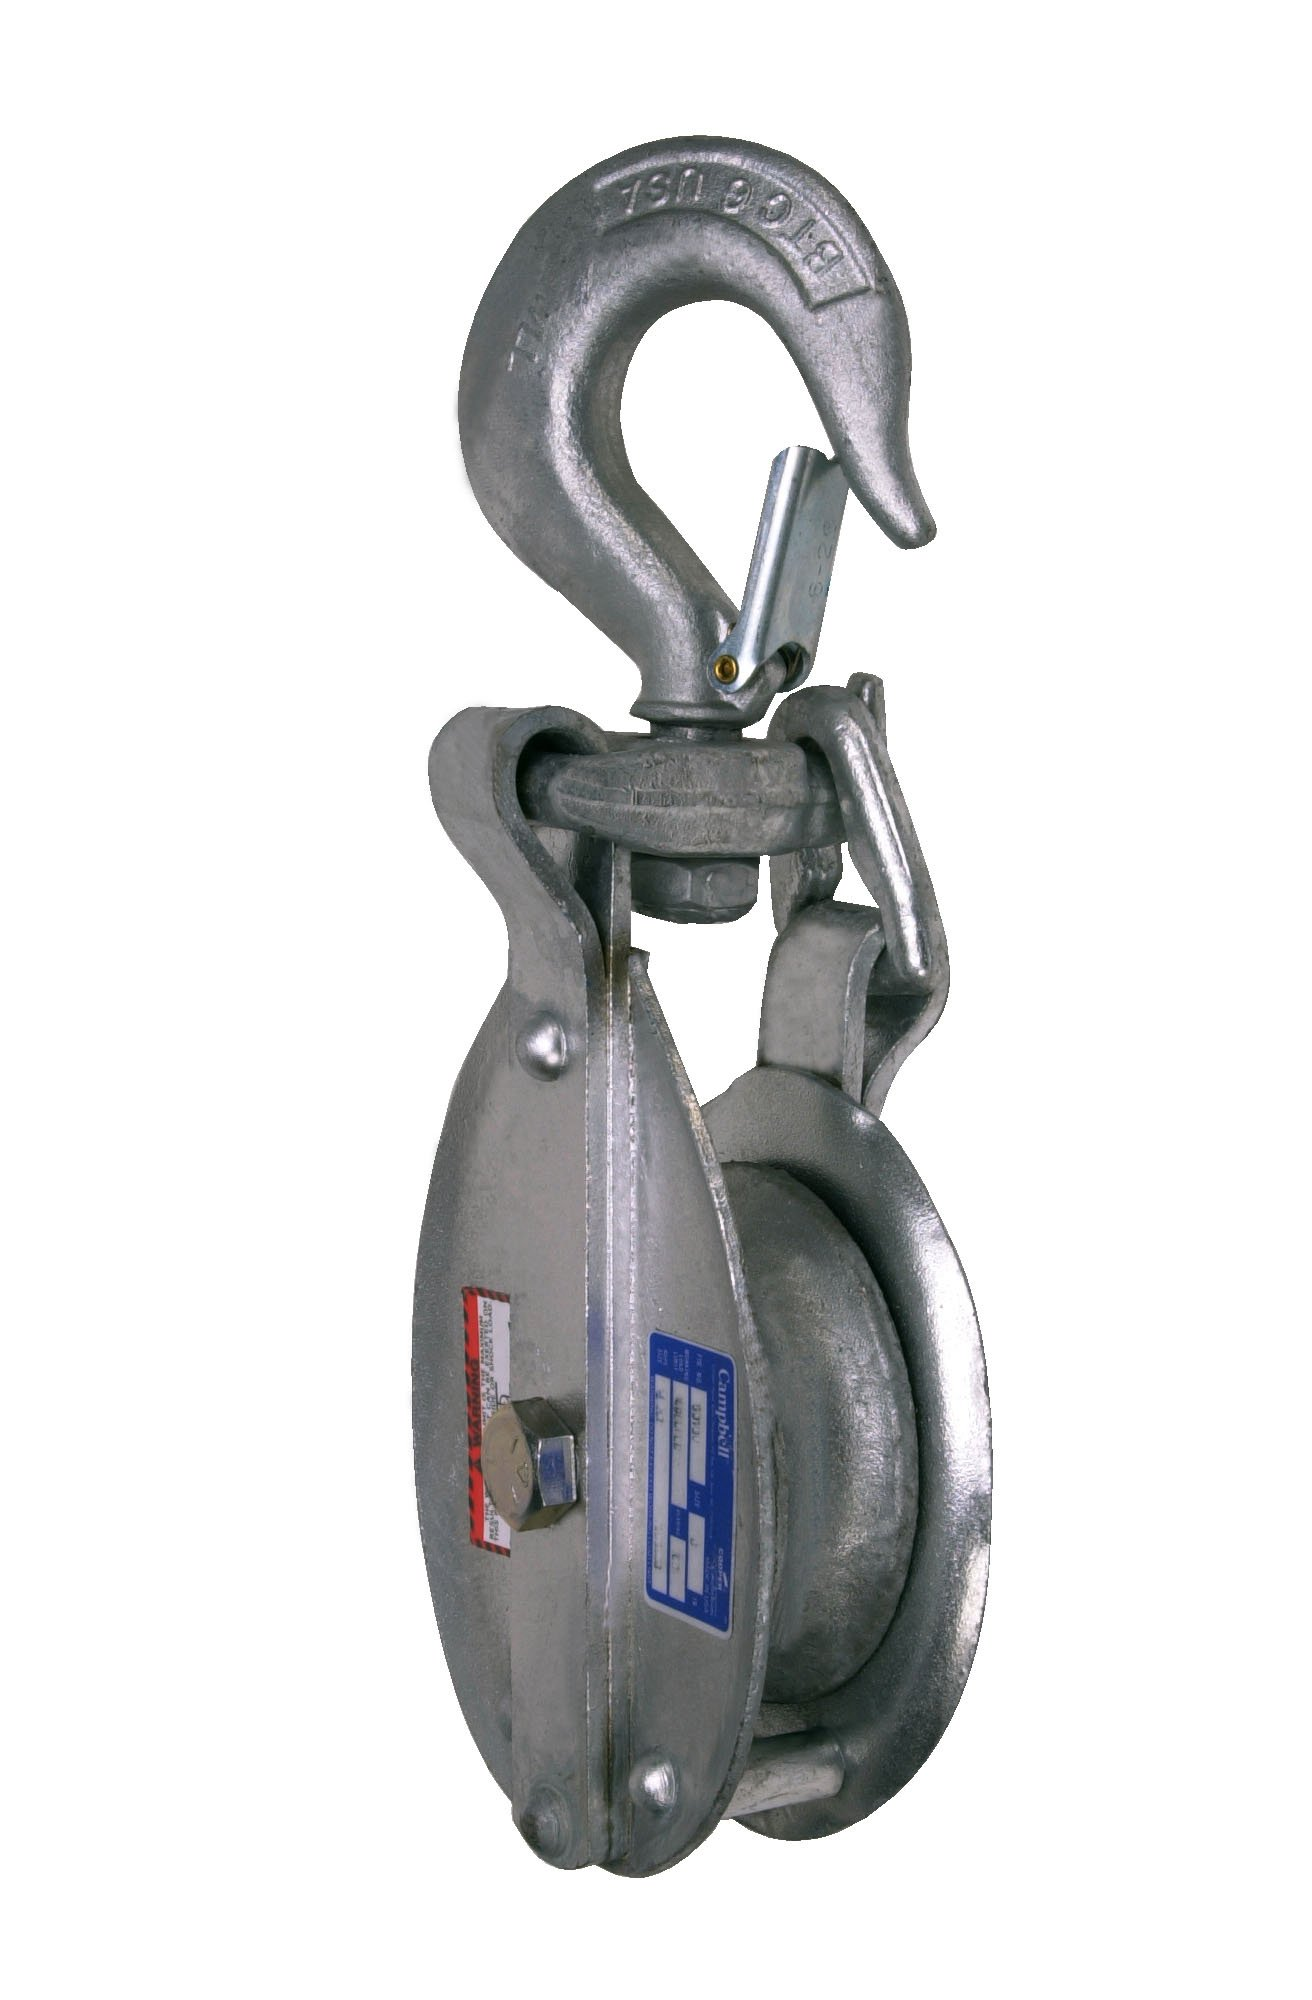 Campbell 3073V 8'' Single Steel Drop Link Snatch Block with Stiff Swivel V Latch Hook, 4800 lbs Load Capacity, 4-1/2'' Sheave